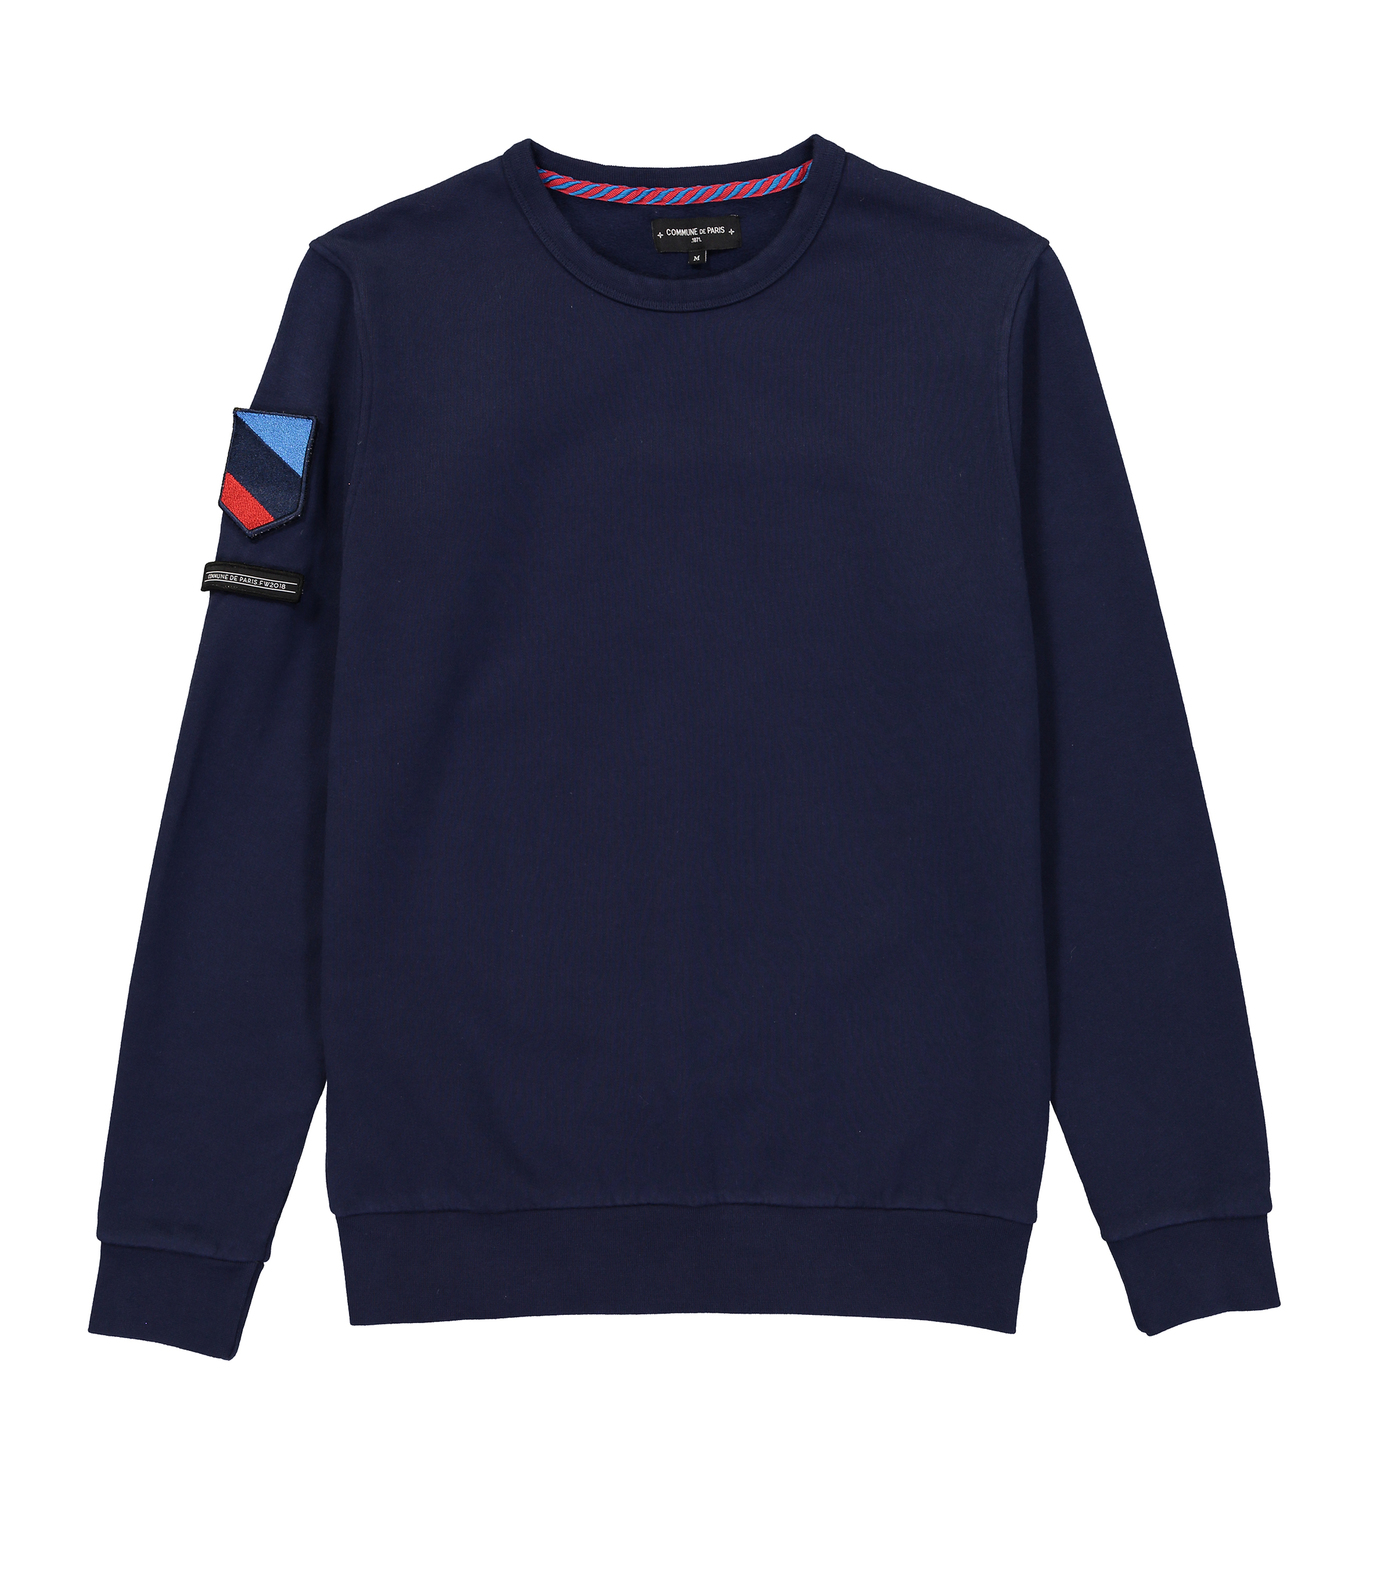 SWEAT ECUSSON - Navy